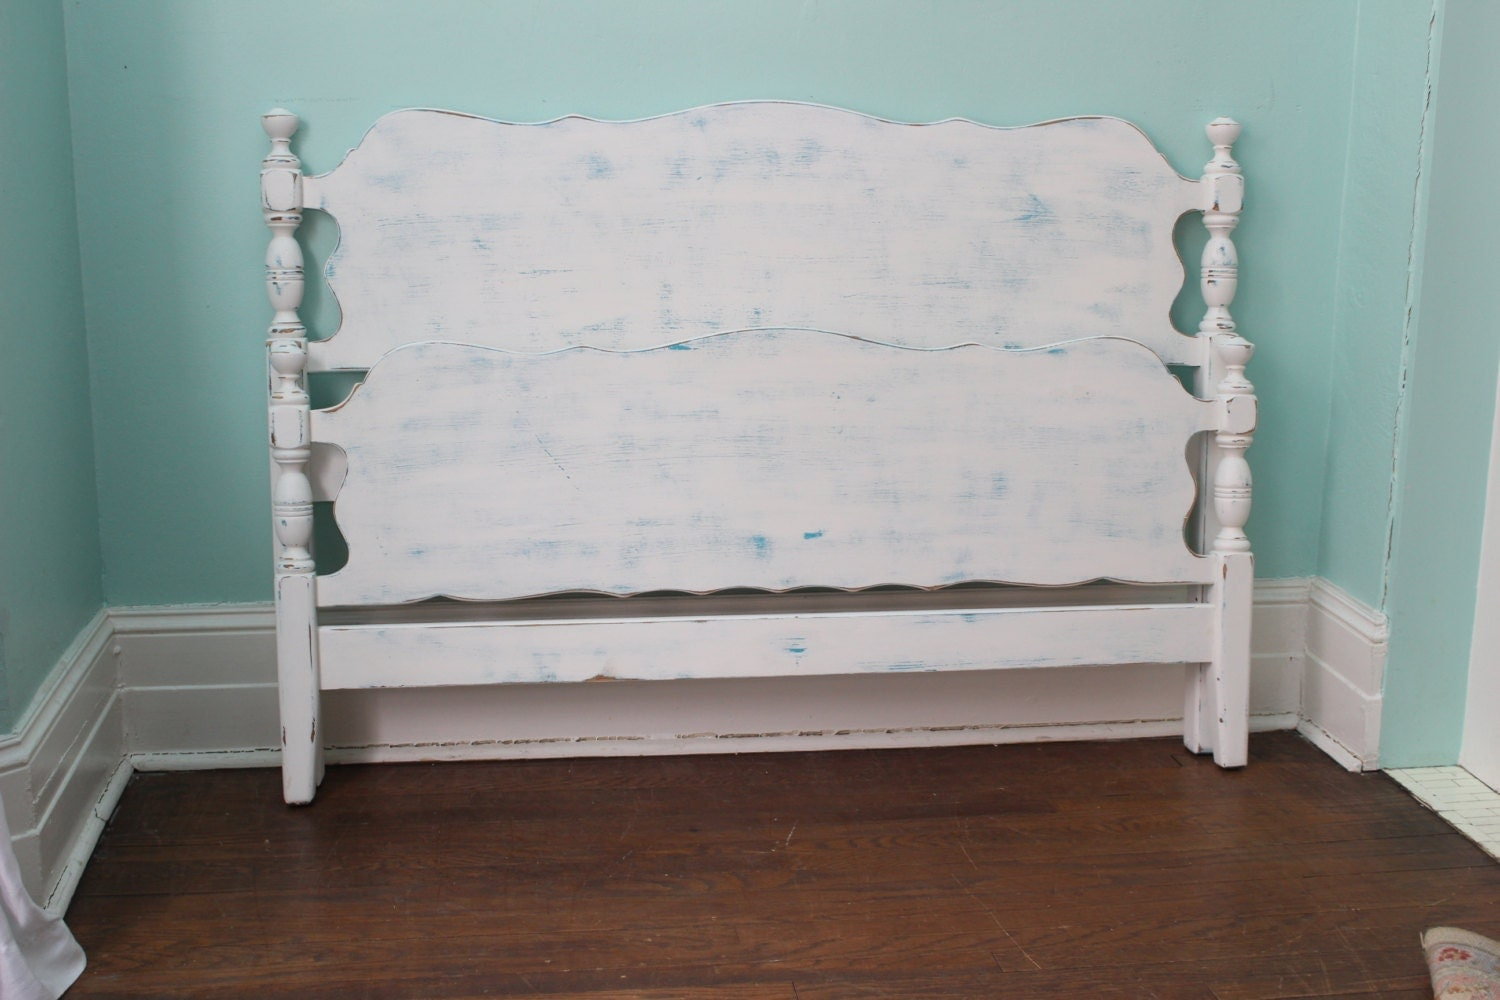 vintage lit plein cadre shabby chic blanc bleu turquoise plage. Black Bedroom Furniture Sets. Home Design Ideas